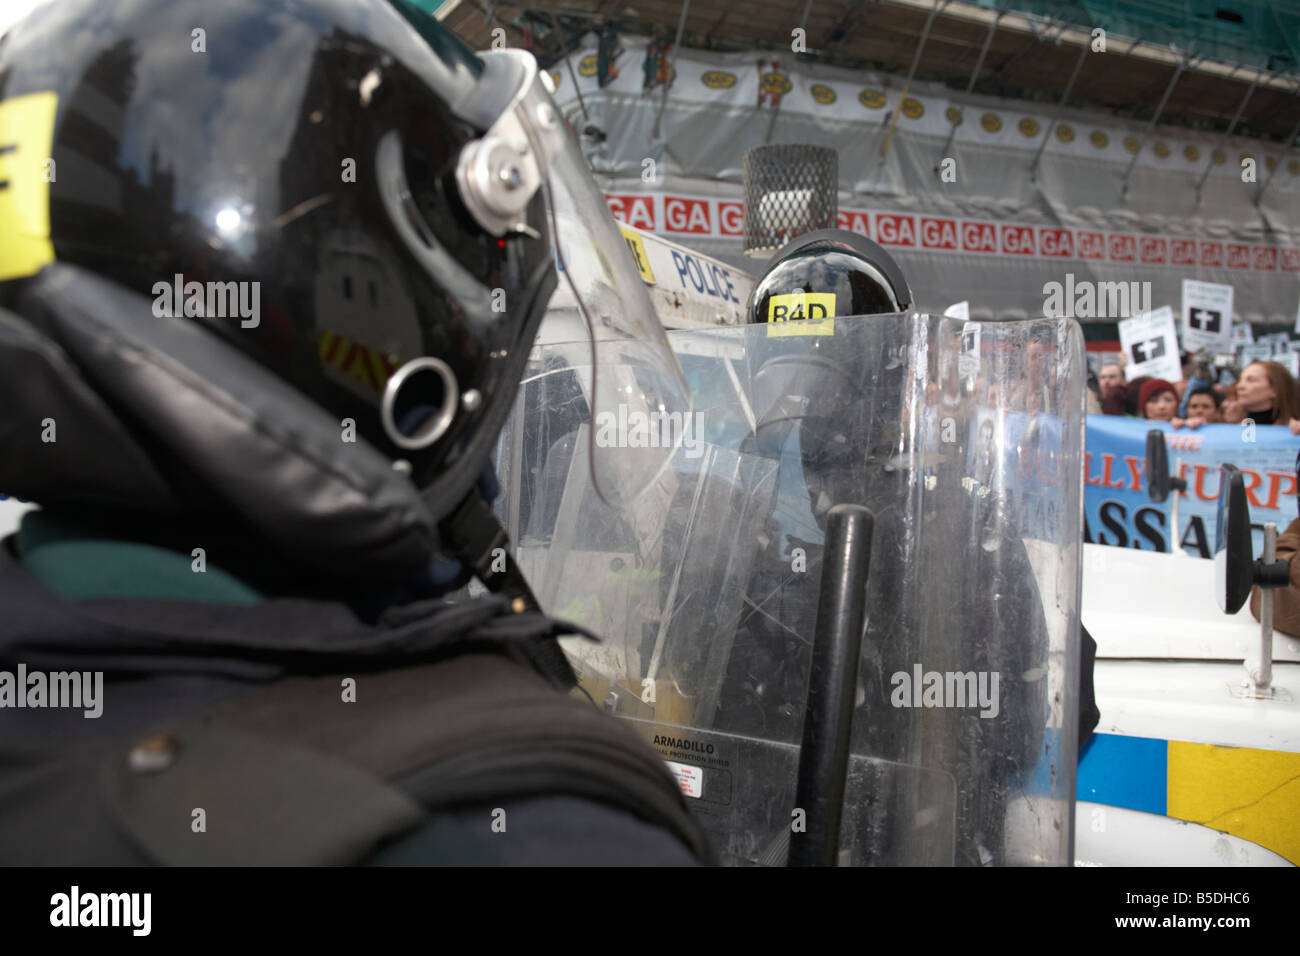 PSNI Police Service of Northern Ireland riot control officer stands guard with helmet and riot shield during republican - Stock Image